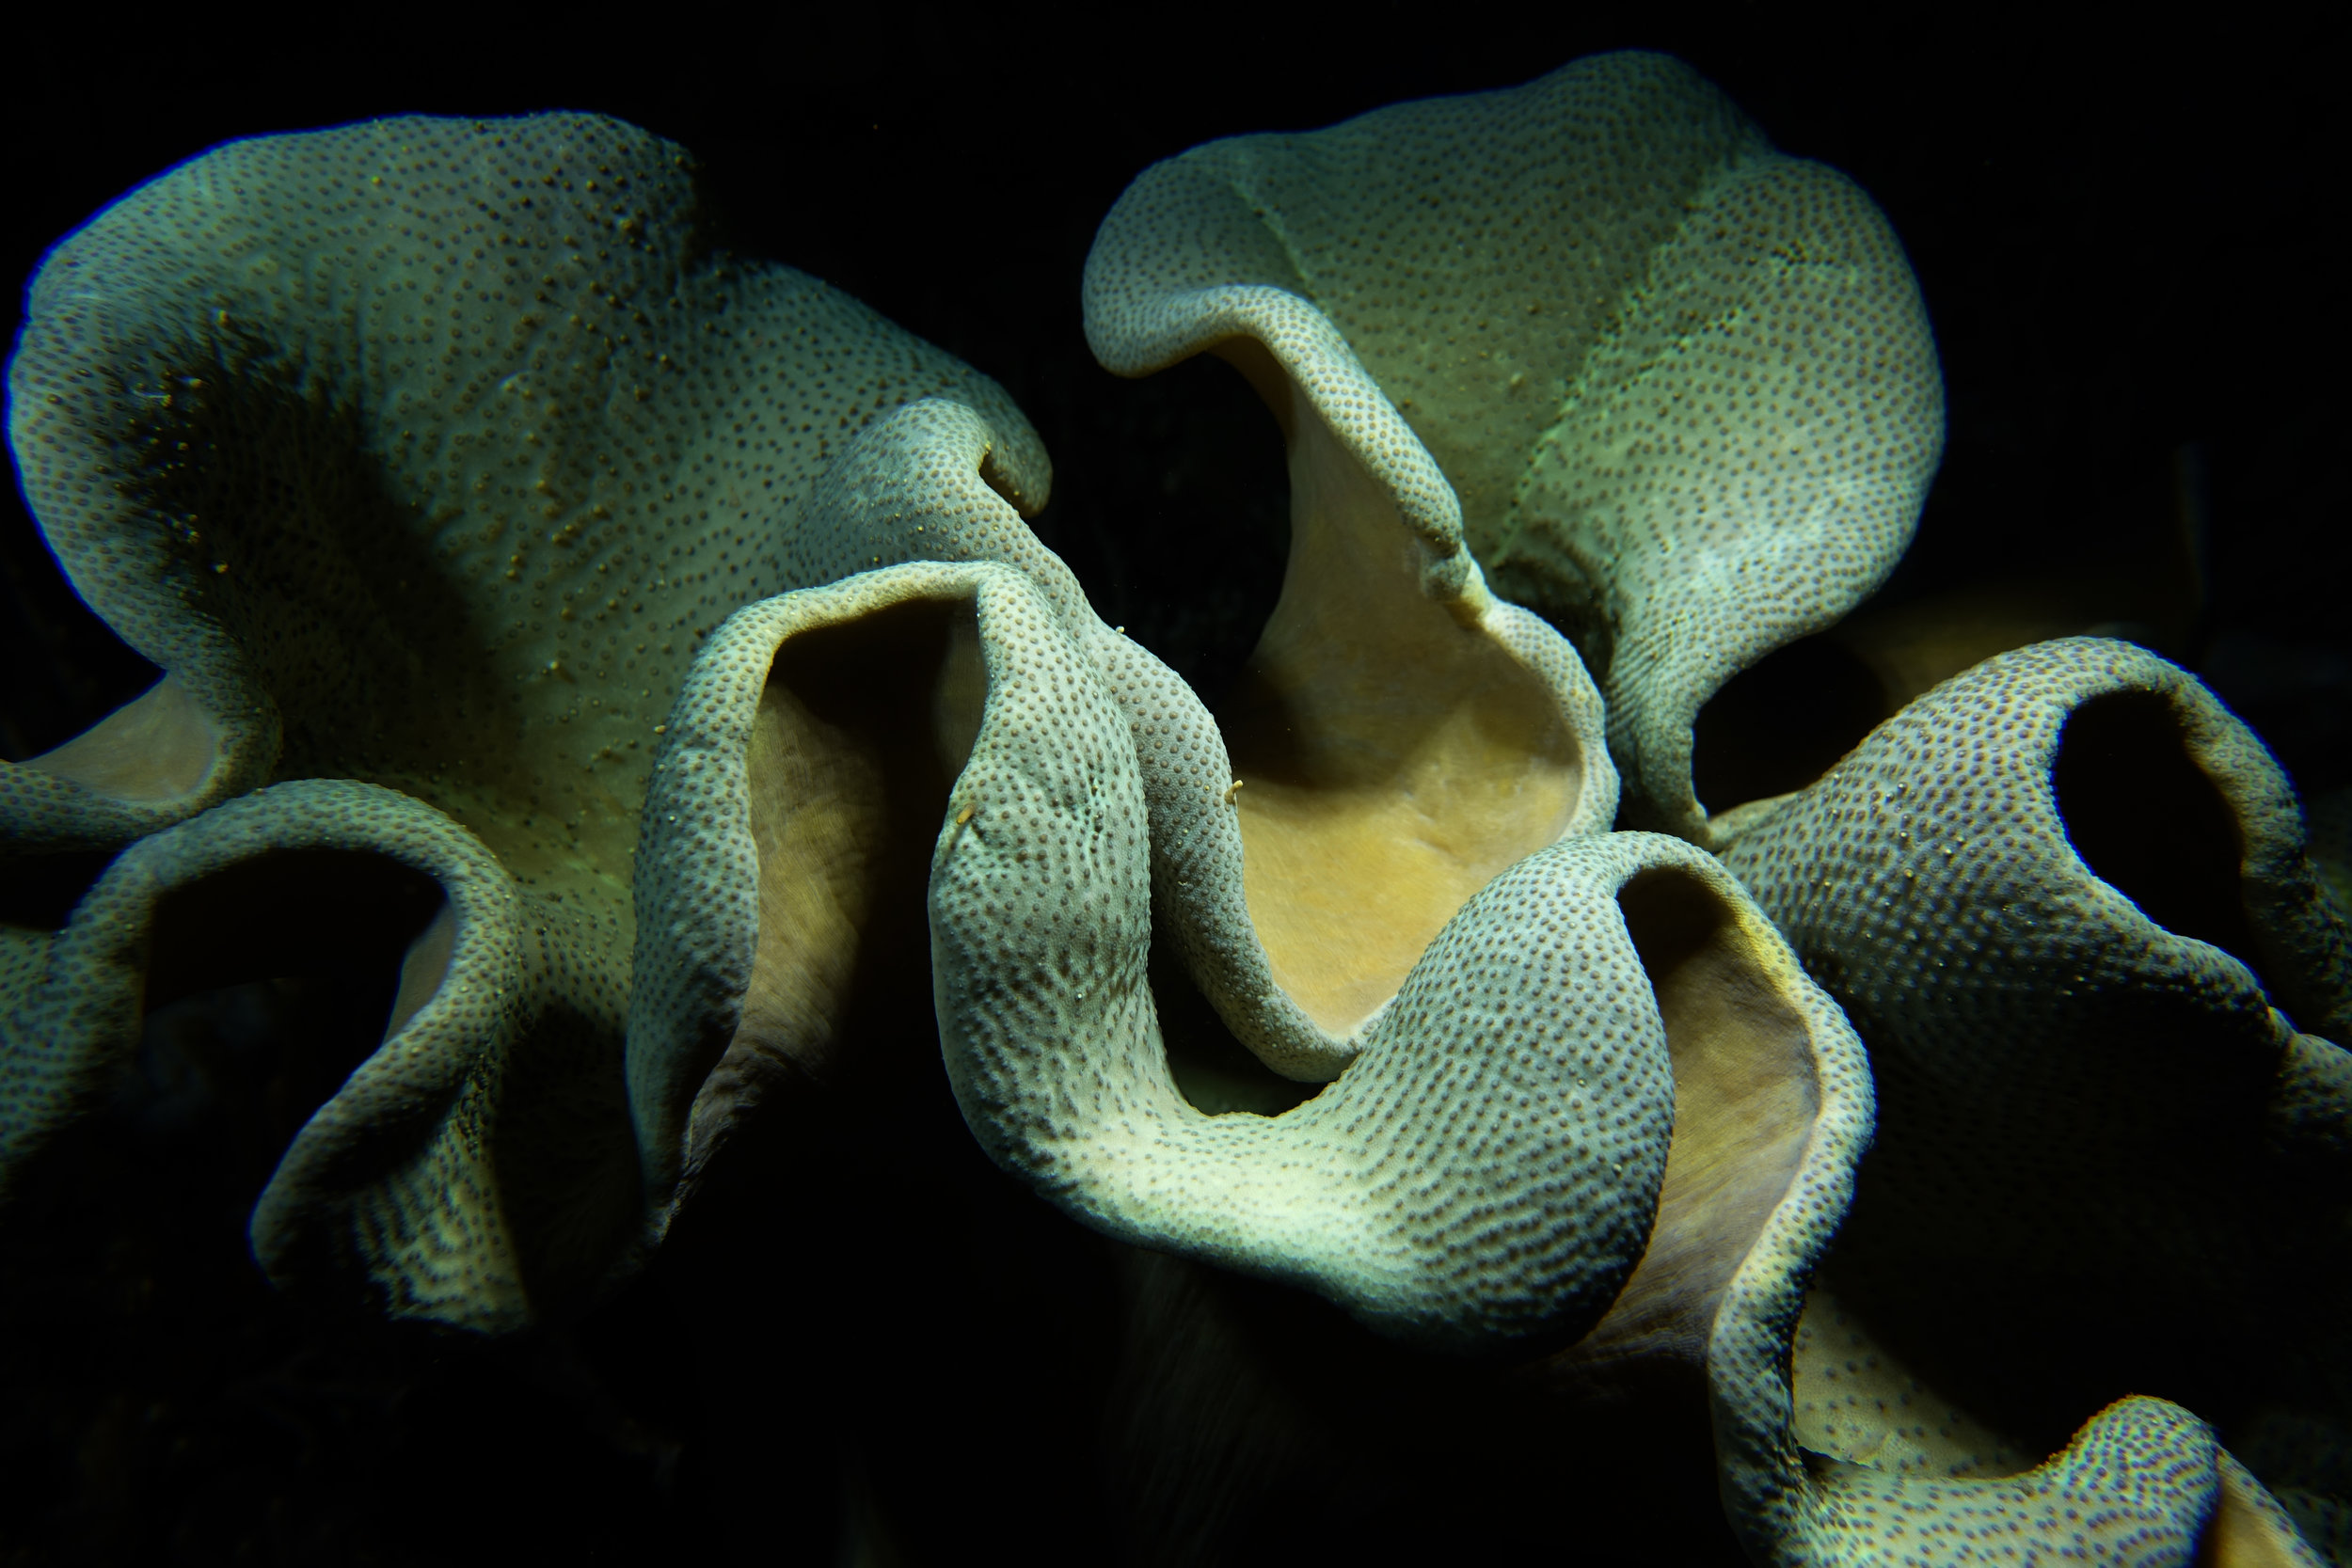 sponge at night 1085.jpg